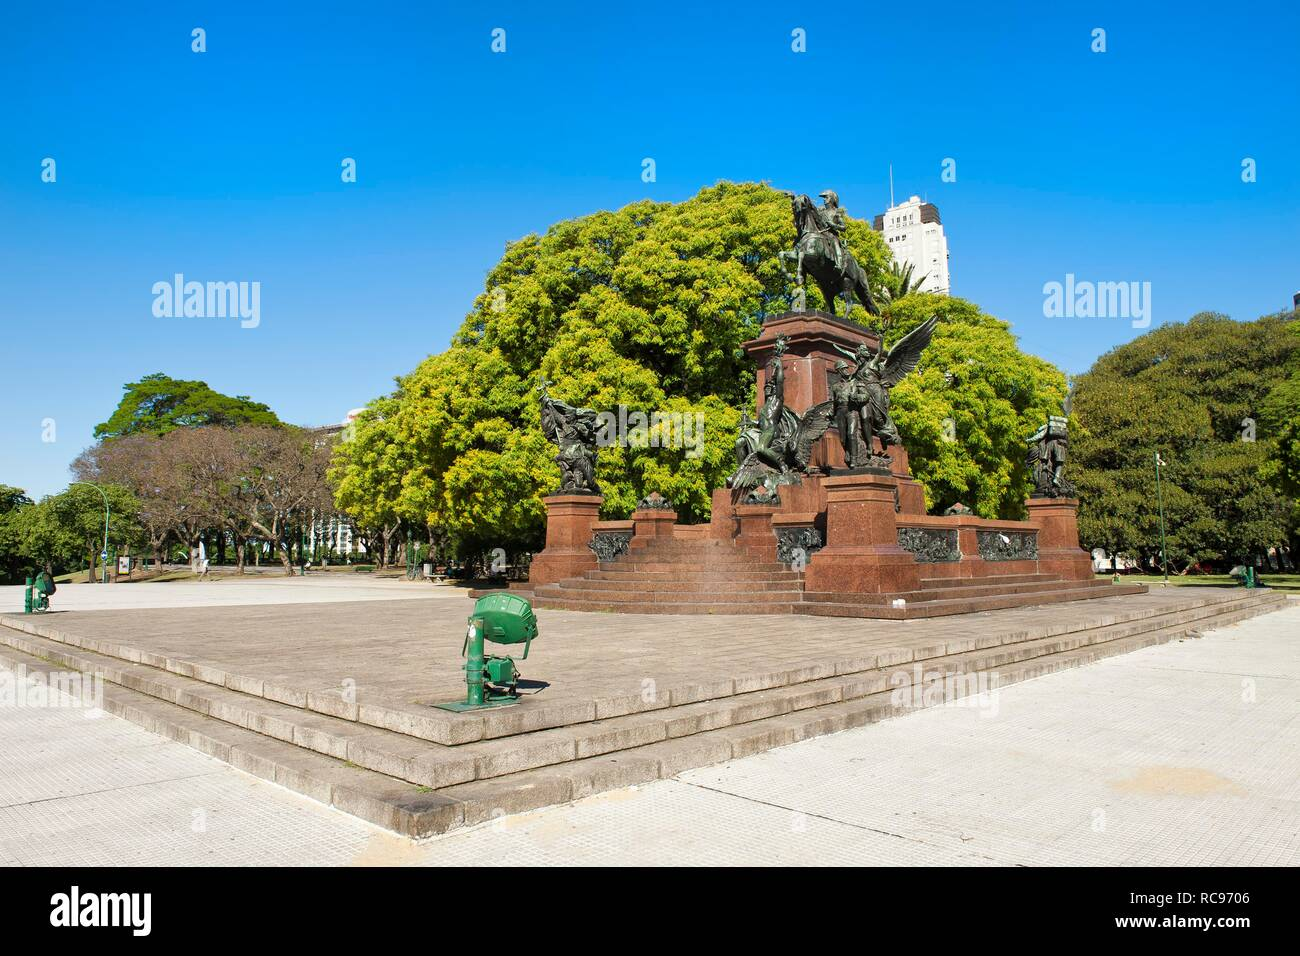 General San Martin Monument, Plaza General San Martin, Buenos Aires, Argentina, South America - Stock Image